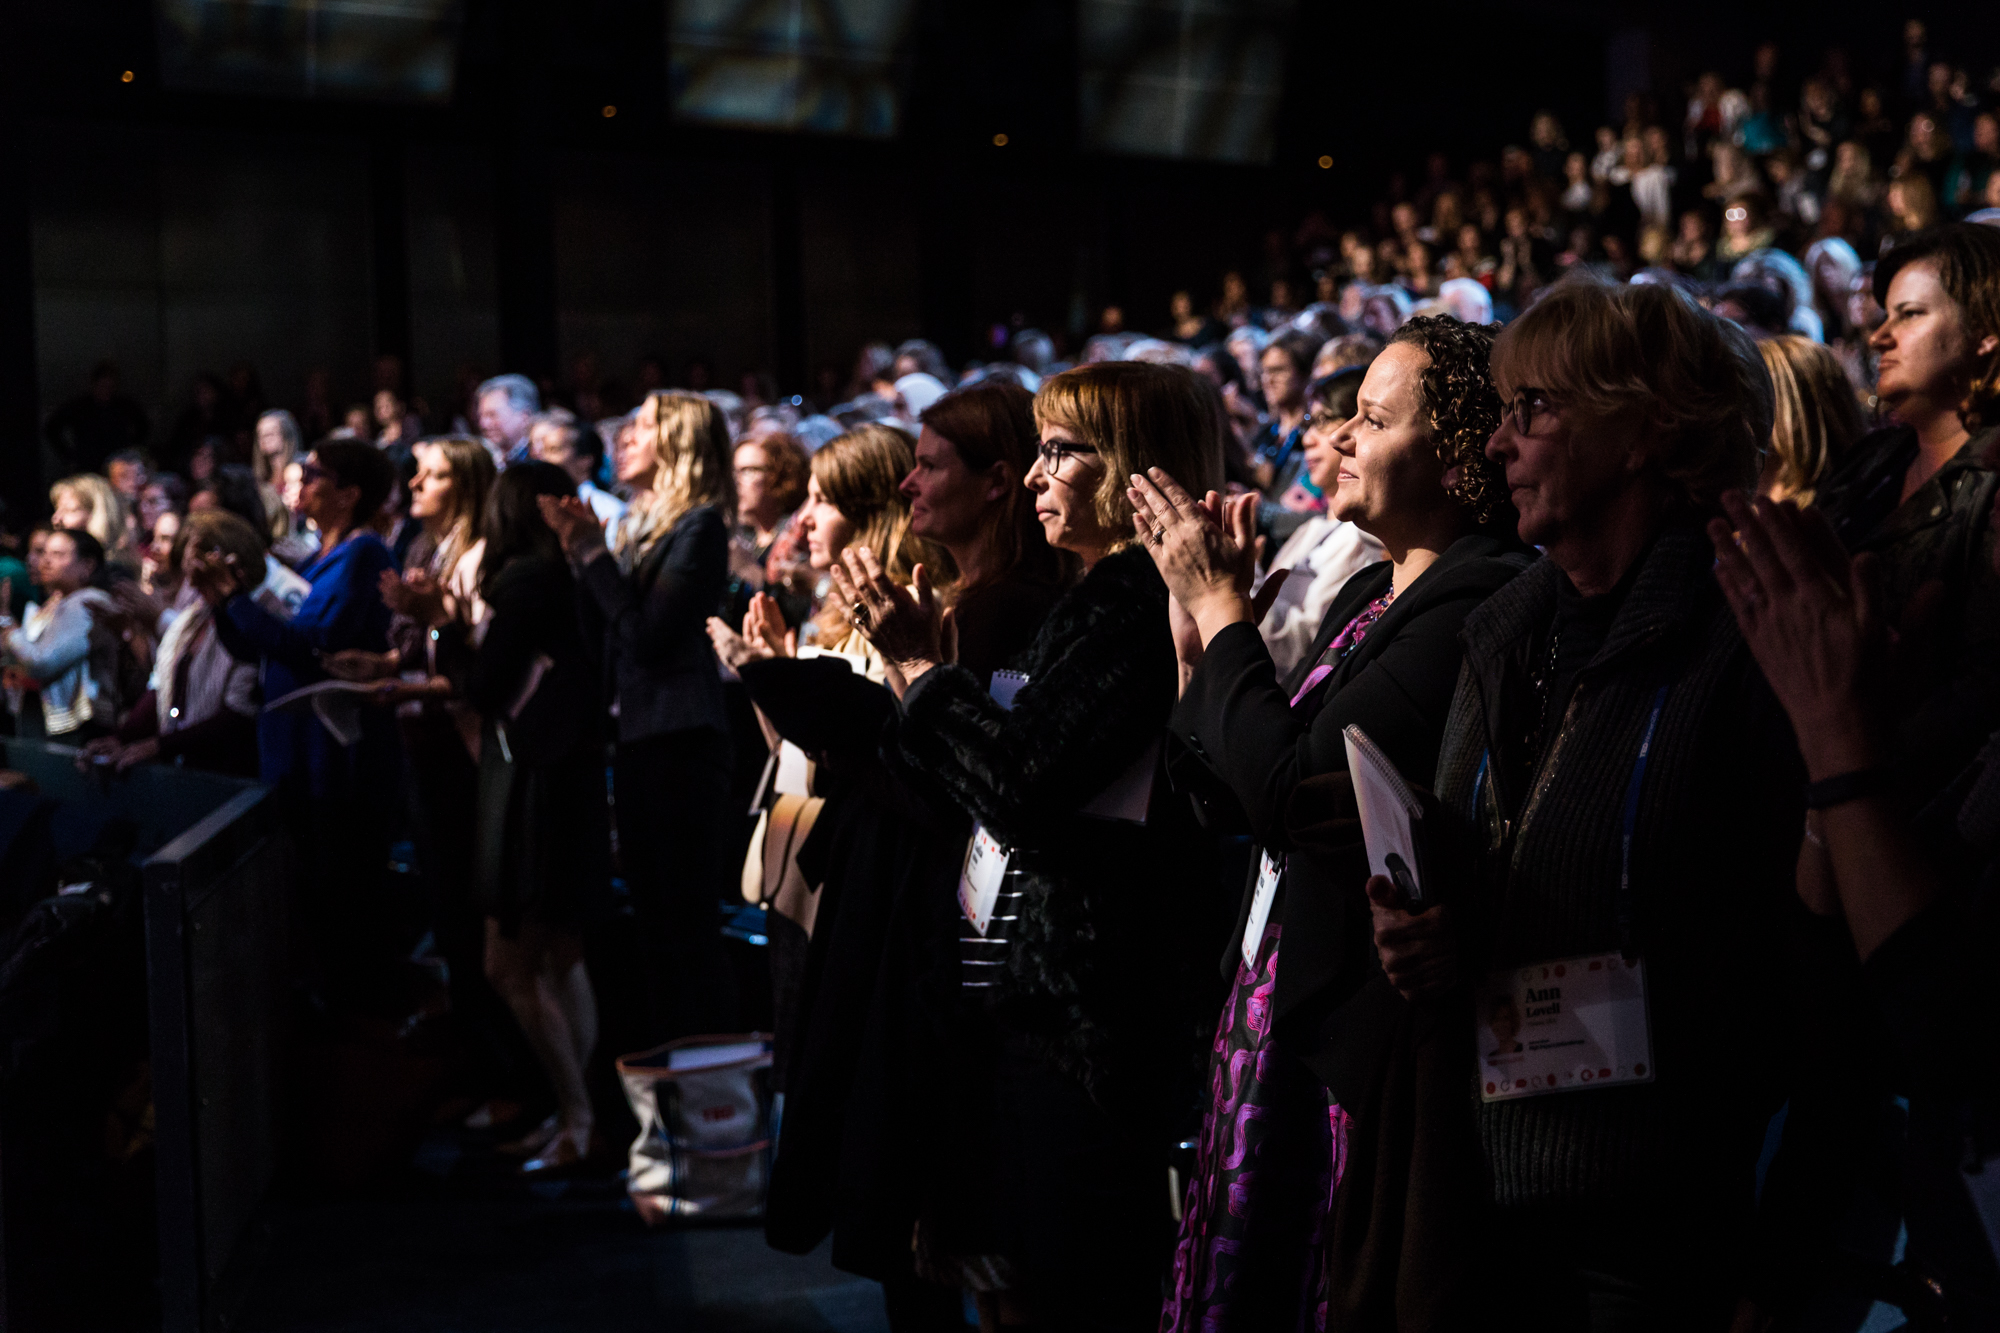 Standing ovation for Thordis Elva and Tom Stranger at TEDWomen 2016 - It's About Time, October 26-28, 2016, Yerba Buena Centre for the Arts, San Francisco, California. Photo: Marla Aufmuth / TED